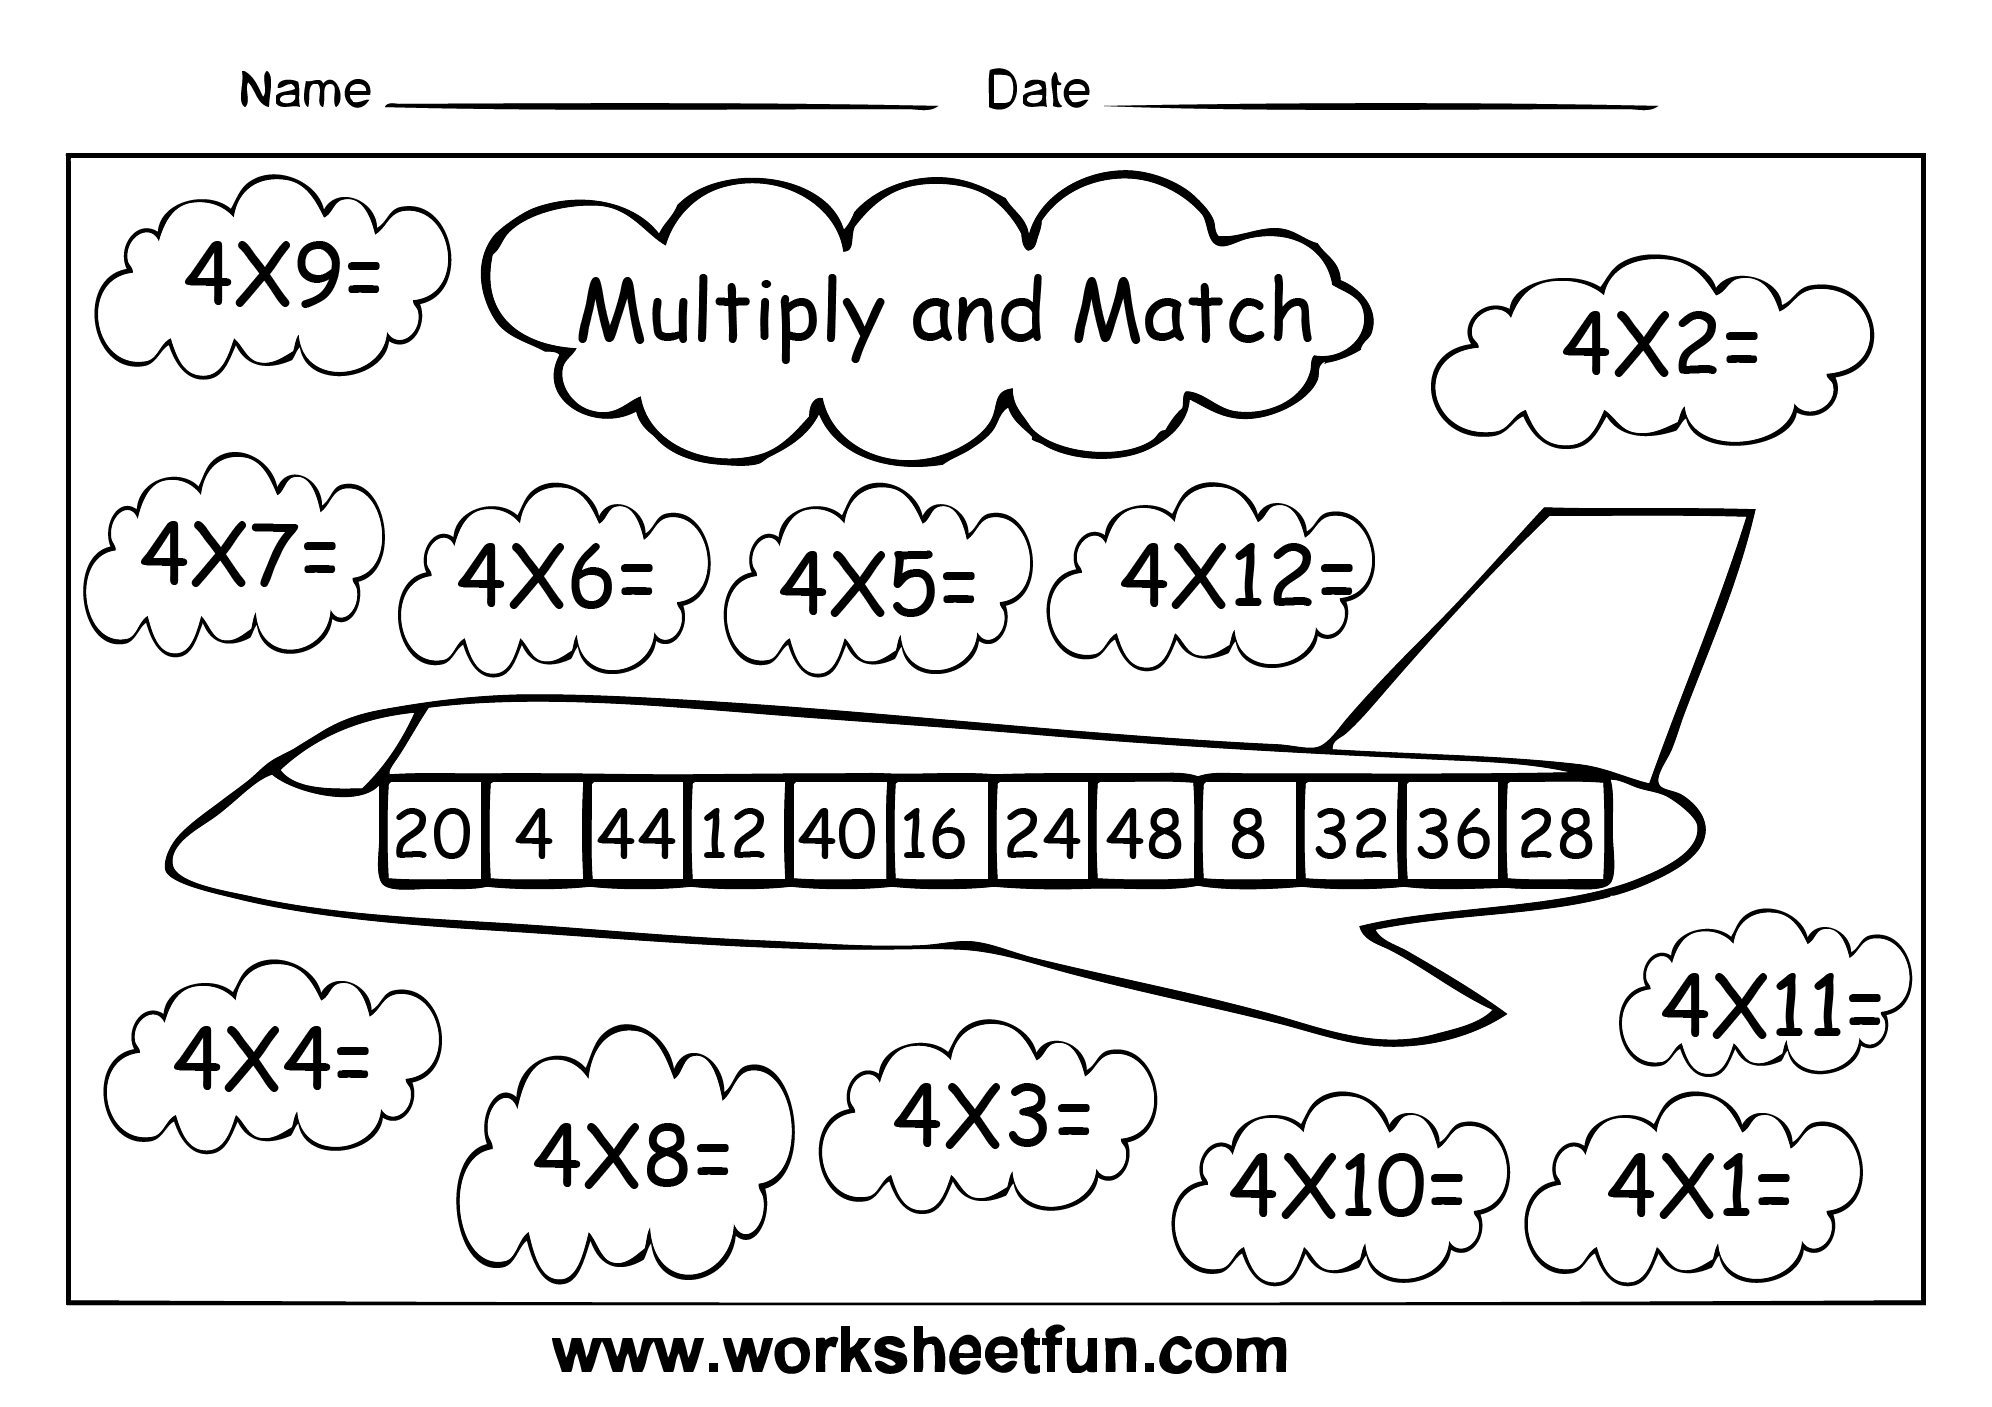 math worksheet : 1000 images about teaching multiplication on pinterest  : Extended Multiplication Facts Worksheets